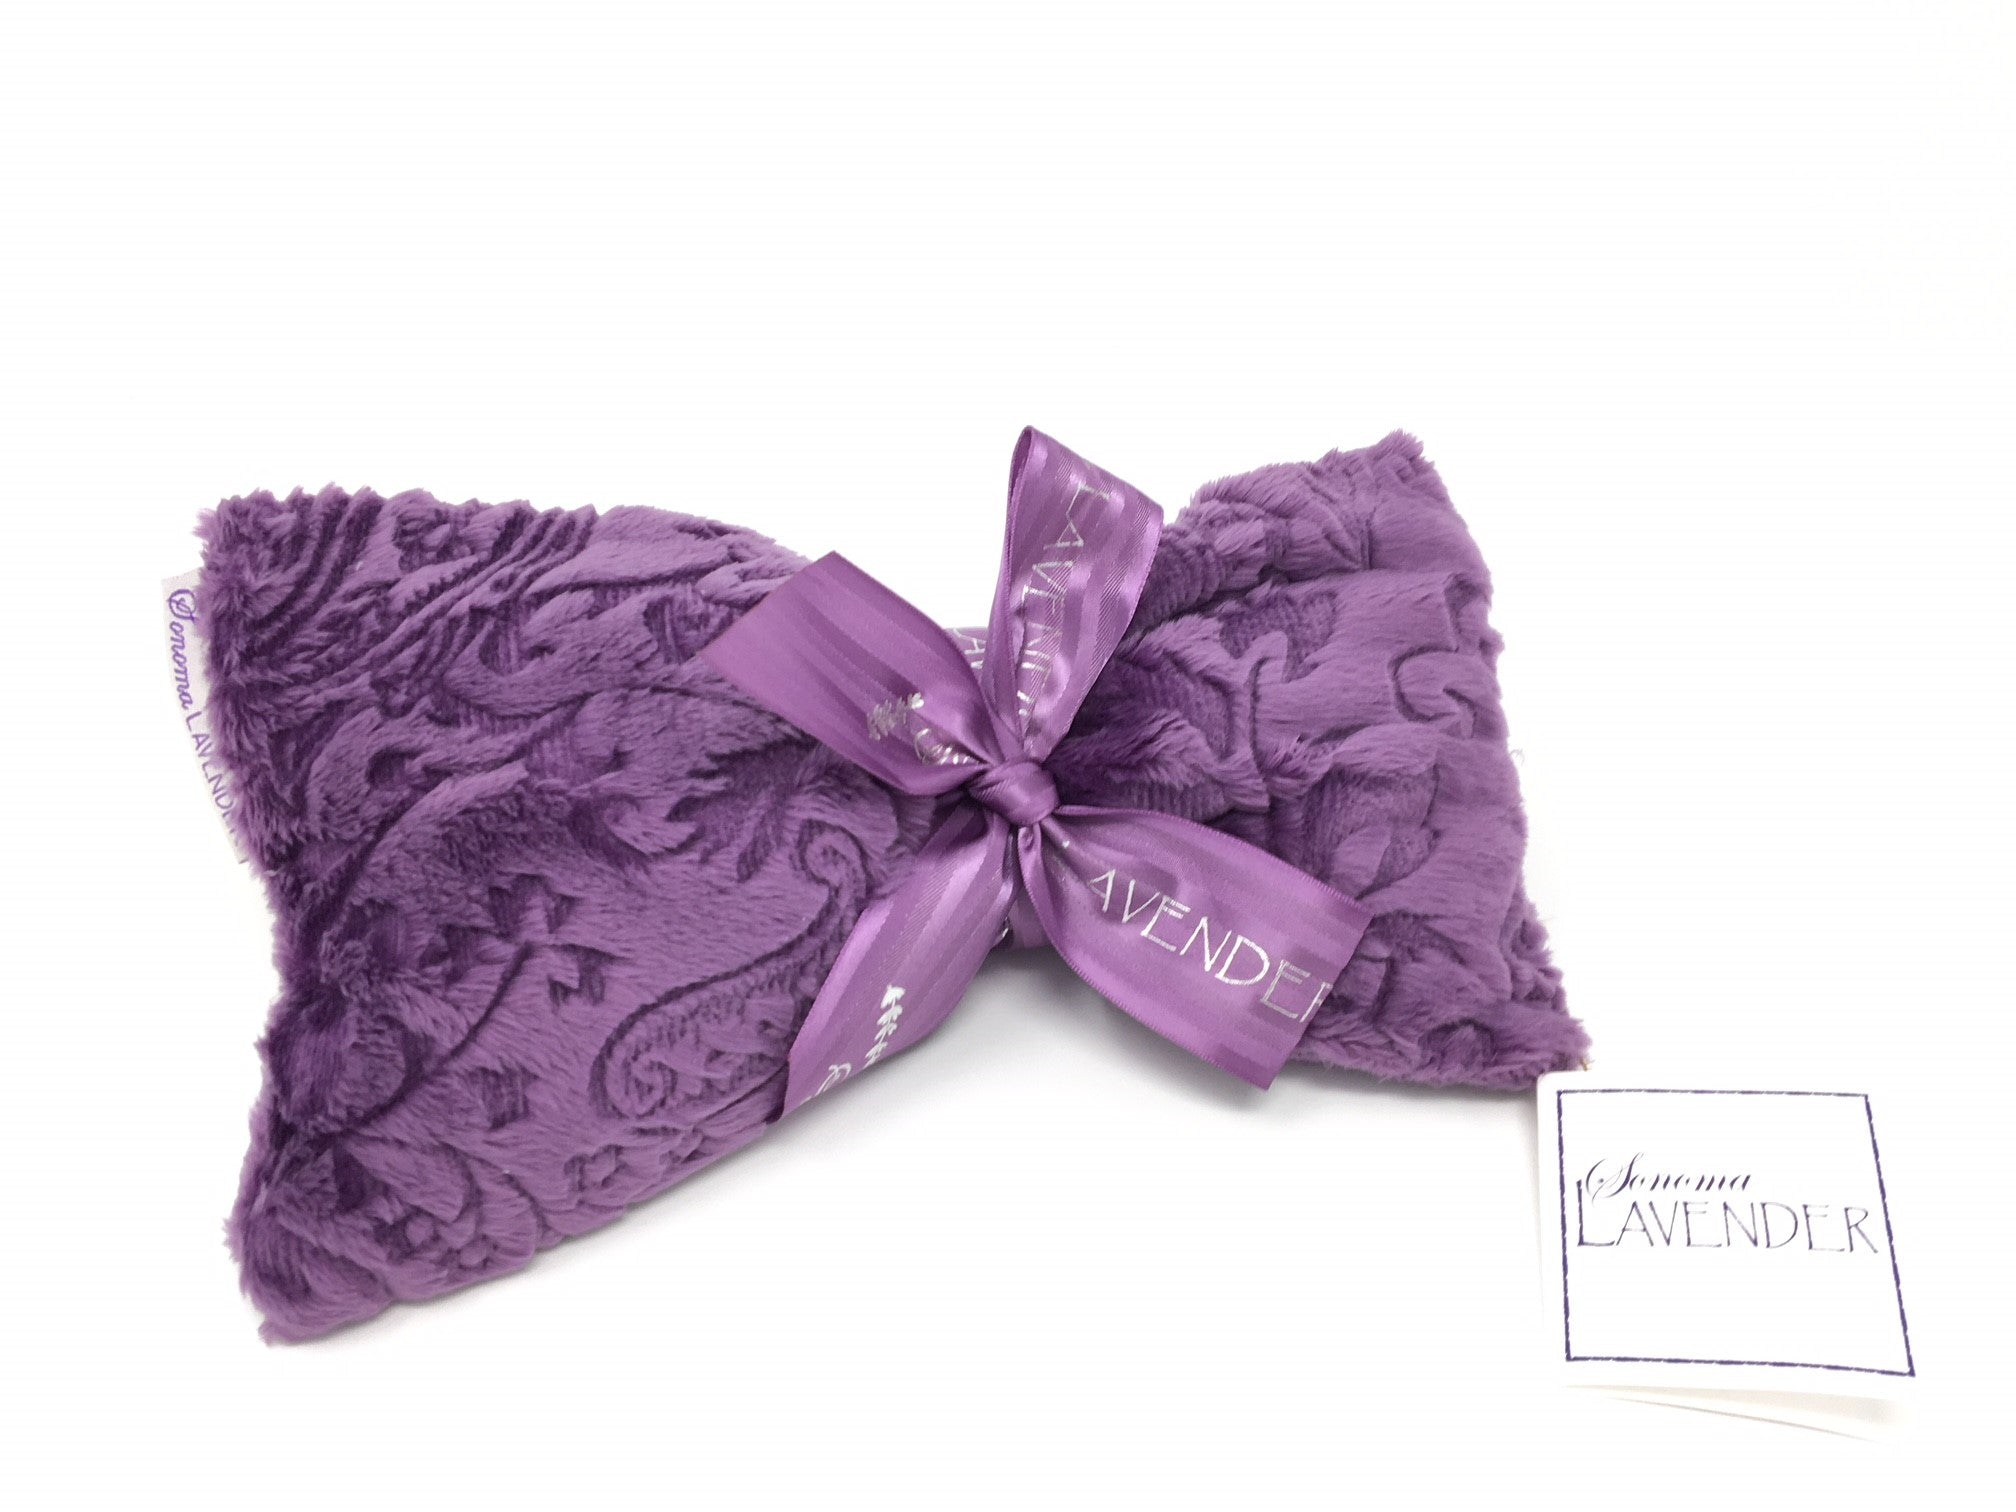 Lavender Spa Mask in Embossed Paisley